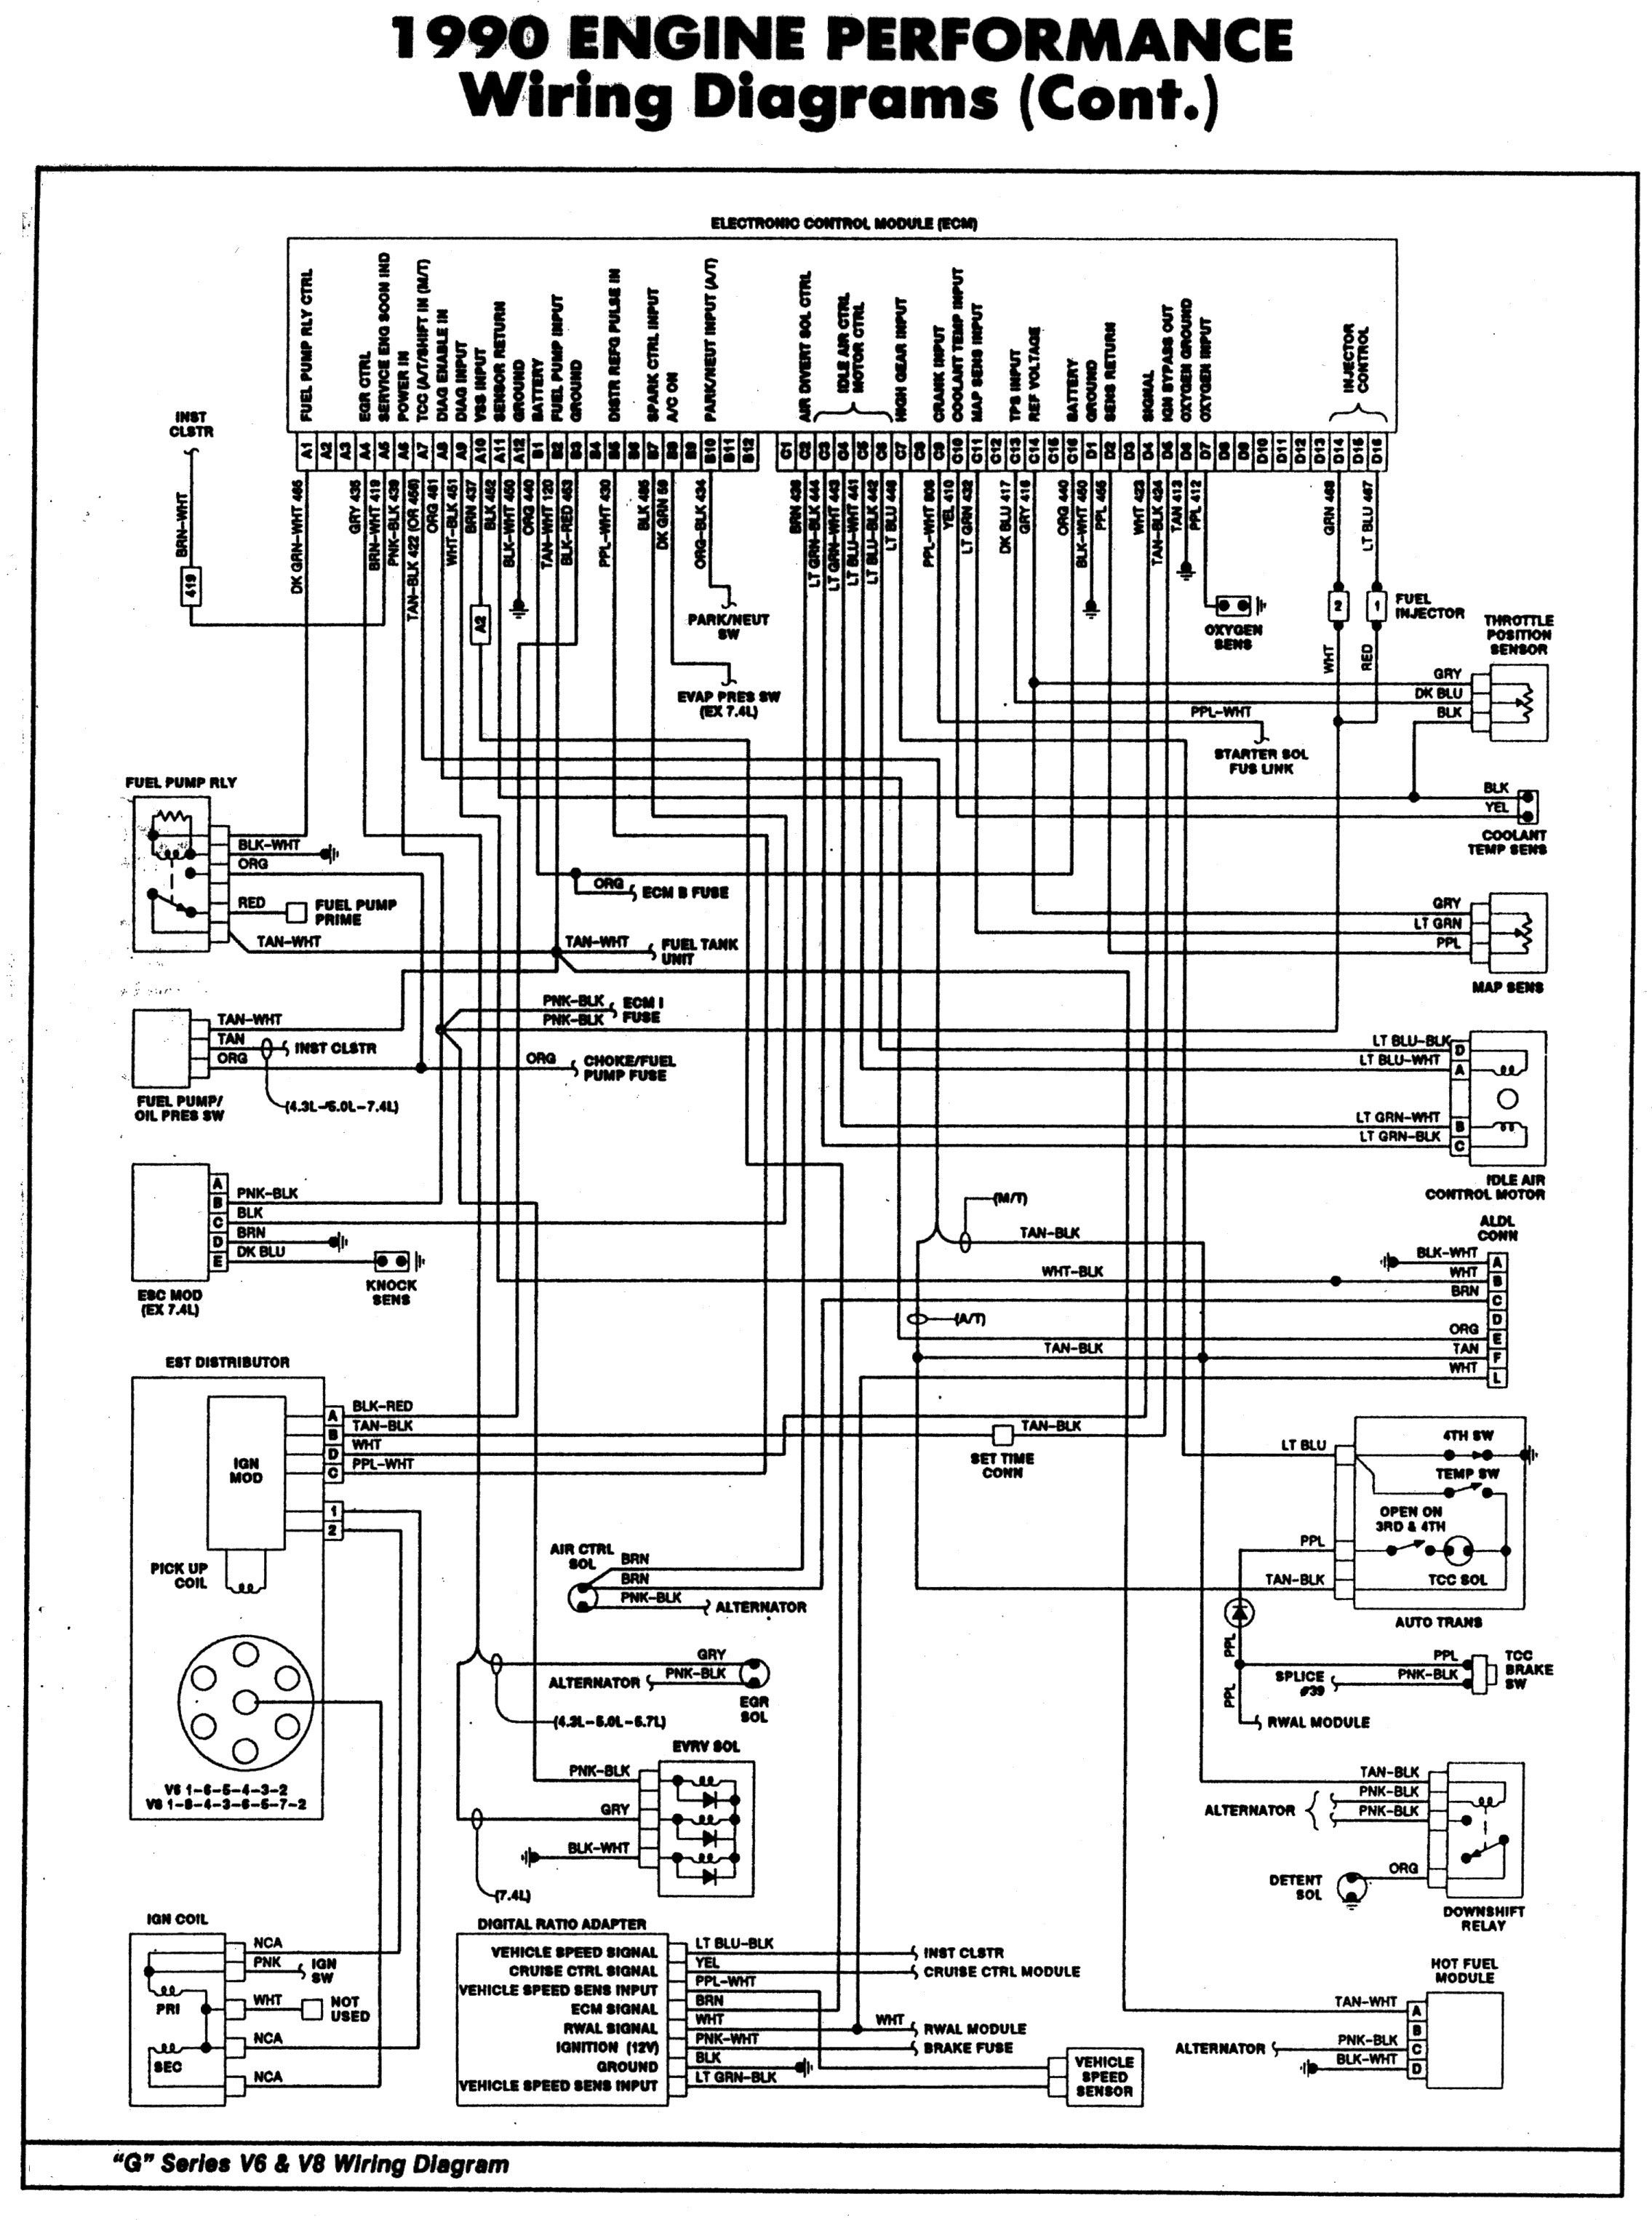 2000 S10 Transmission Wiring Diagram Free Download 1990 ...  S Wiring Diagram Free Download Schematic on headlight switch wiring diagram, 97 s10 ignition switch diagram, s10 electrical diagram, 88 s10 engine, 88 s10 air cleaner, 88 s10 suspension, chevrolet s10 engine diagram, 88 s10 fuel gauge, 88 s10 frame, 88 s10 seats, 88 s10 parts, 88 s10 radiator, 88 s10 wheels, 88 s10 air conditioning,